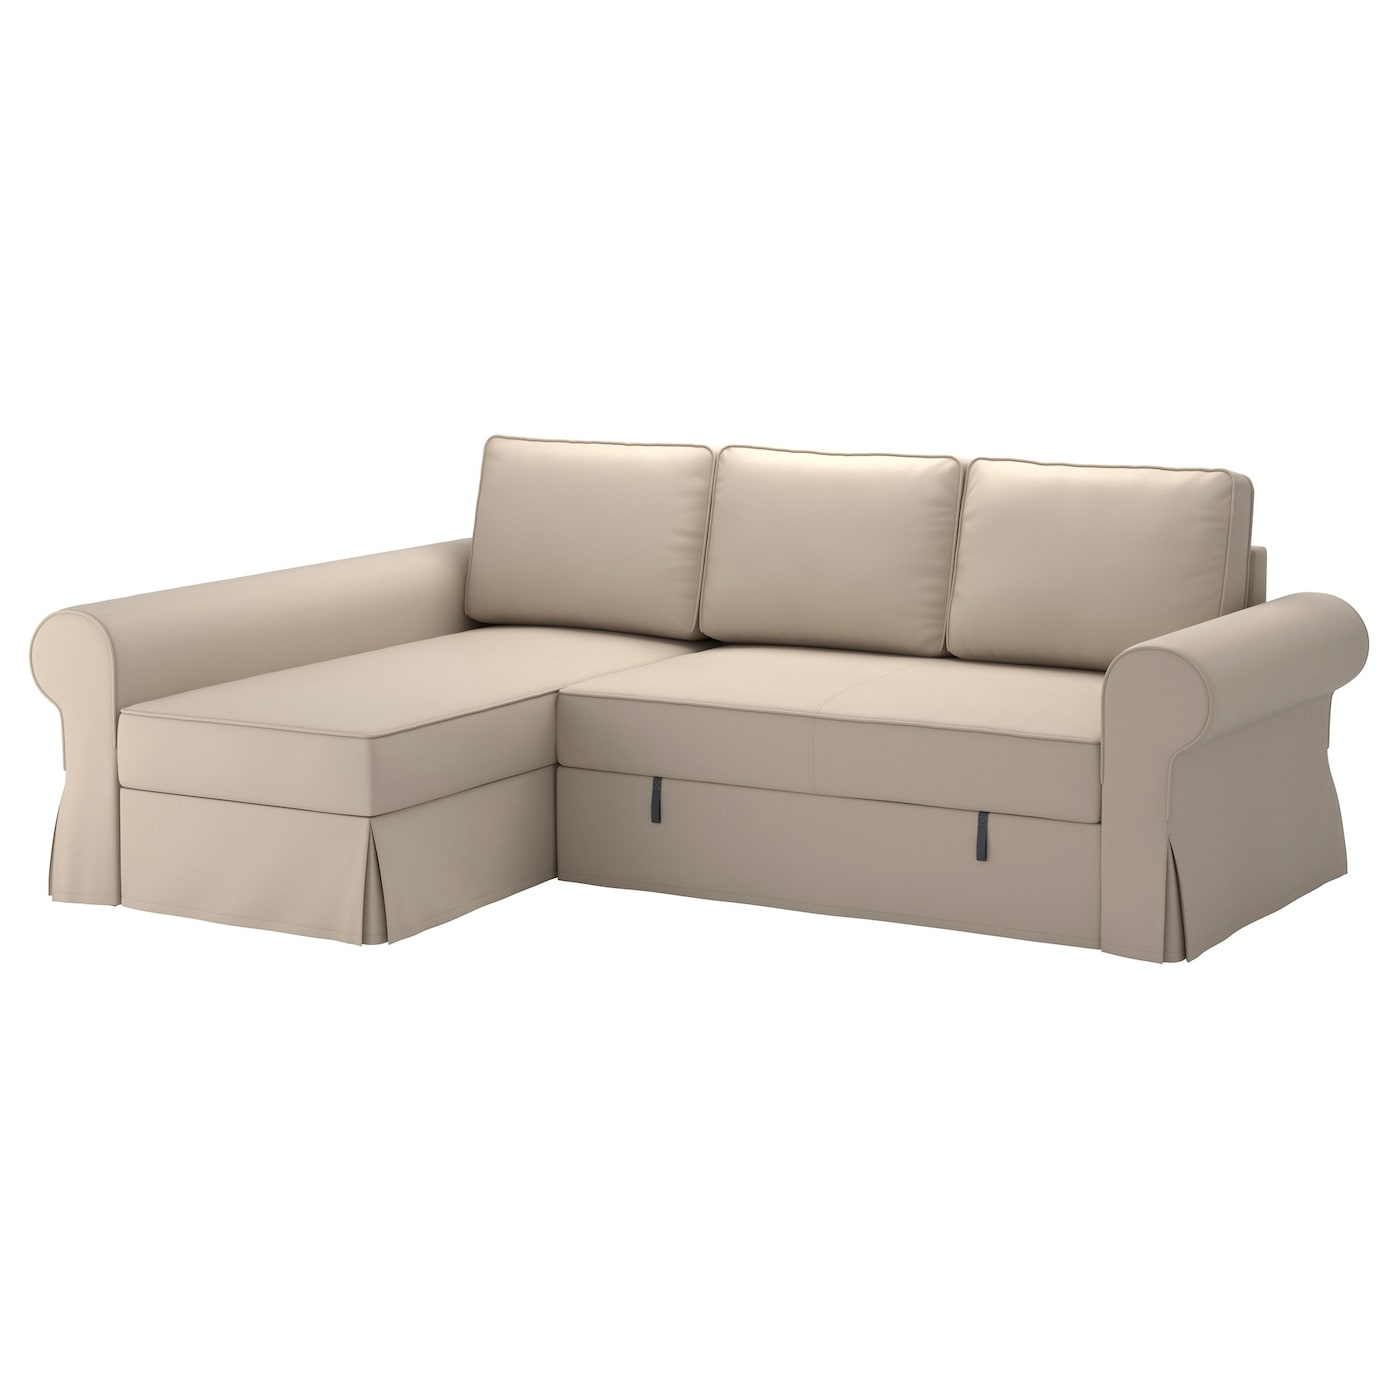 Backabro sofa bed with chaise longue ramna beige ikea for Chaise longue beds